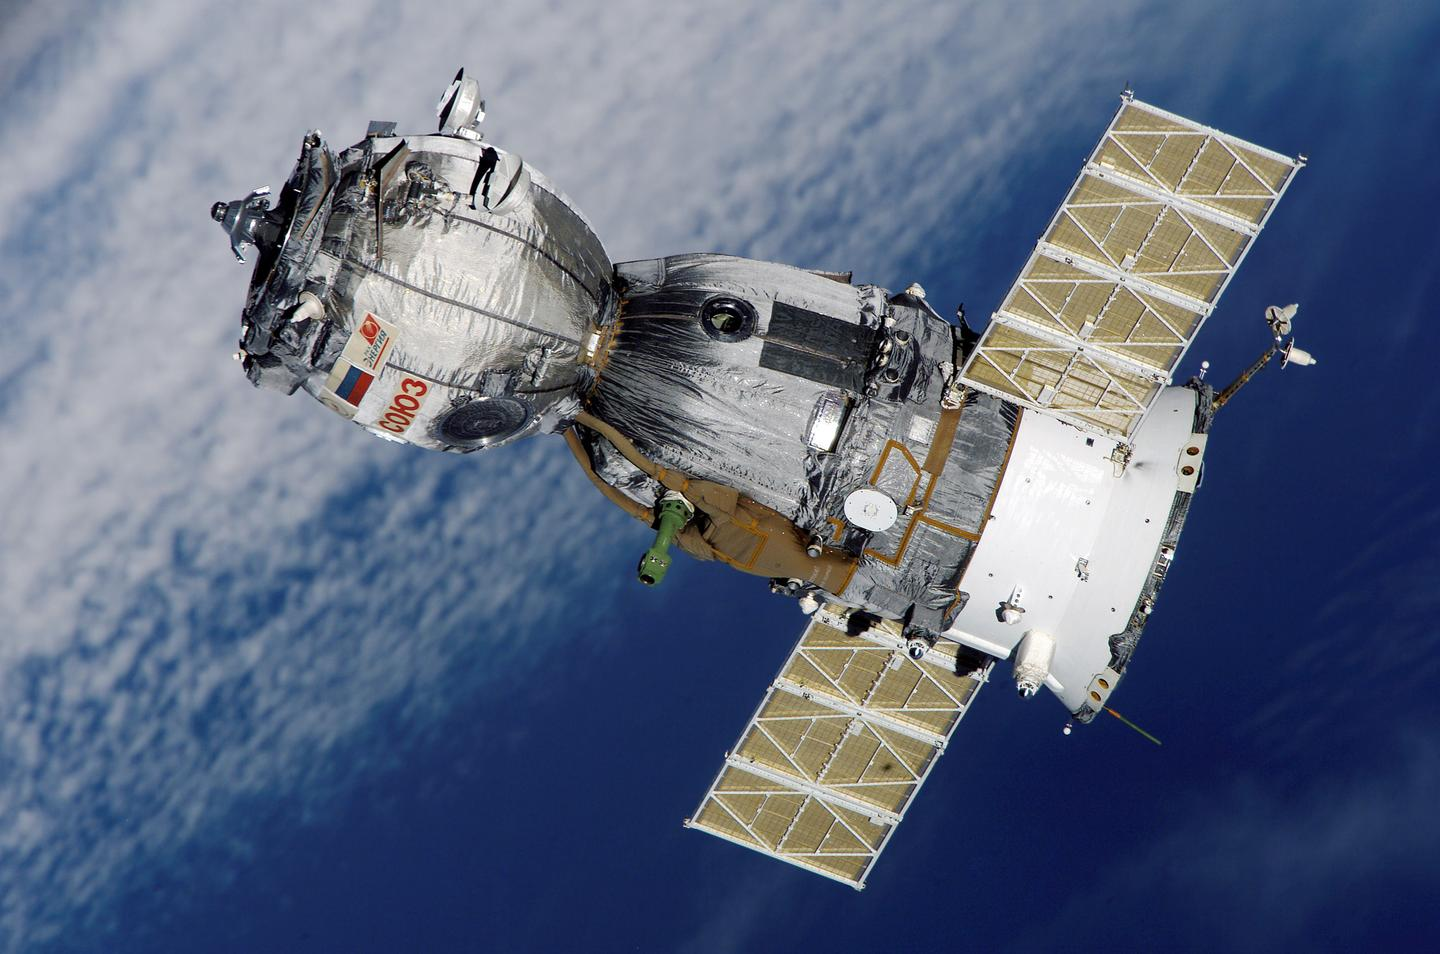 A Soyuz spacecraft on previous visit to the ISS (Image: NASA)